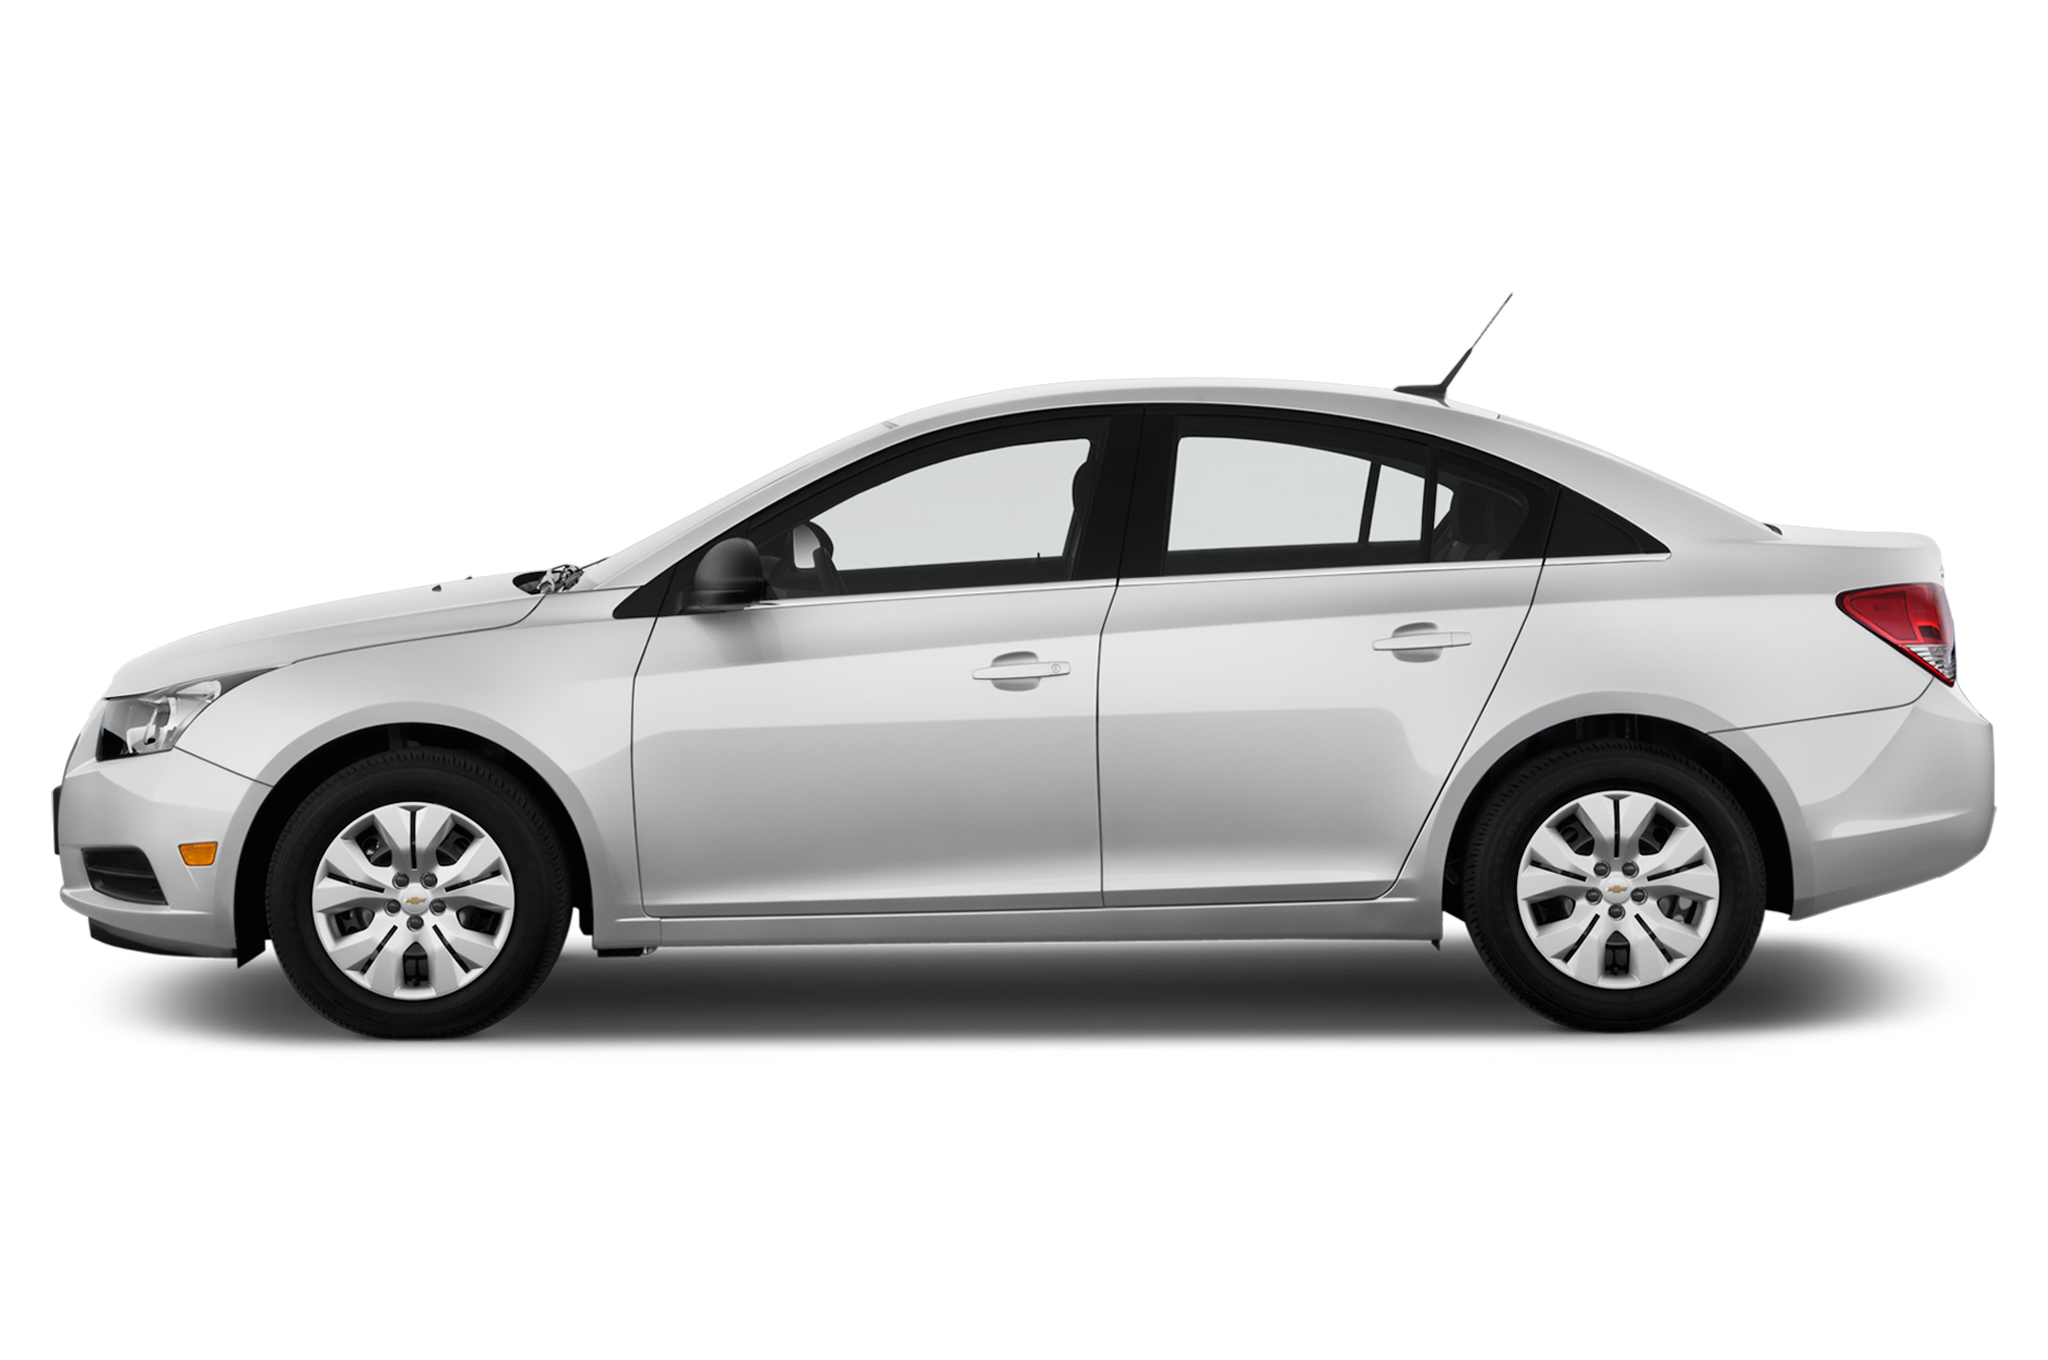 Chevy car clipart image black and white library Chevrolet Cruze PNG Image - PurePNG | Free transparent CC0 PNG Image ... image black and white library